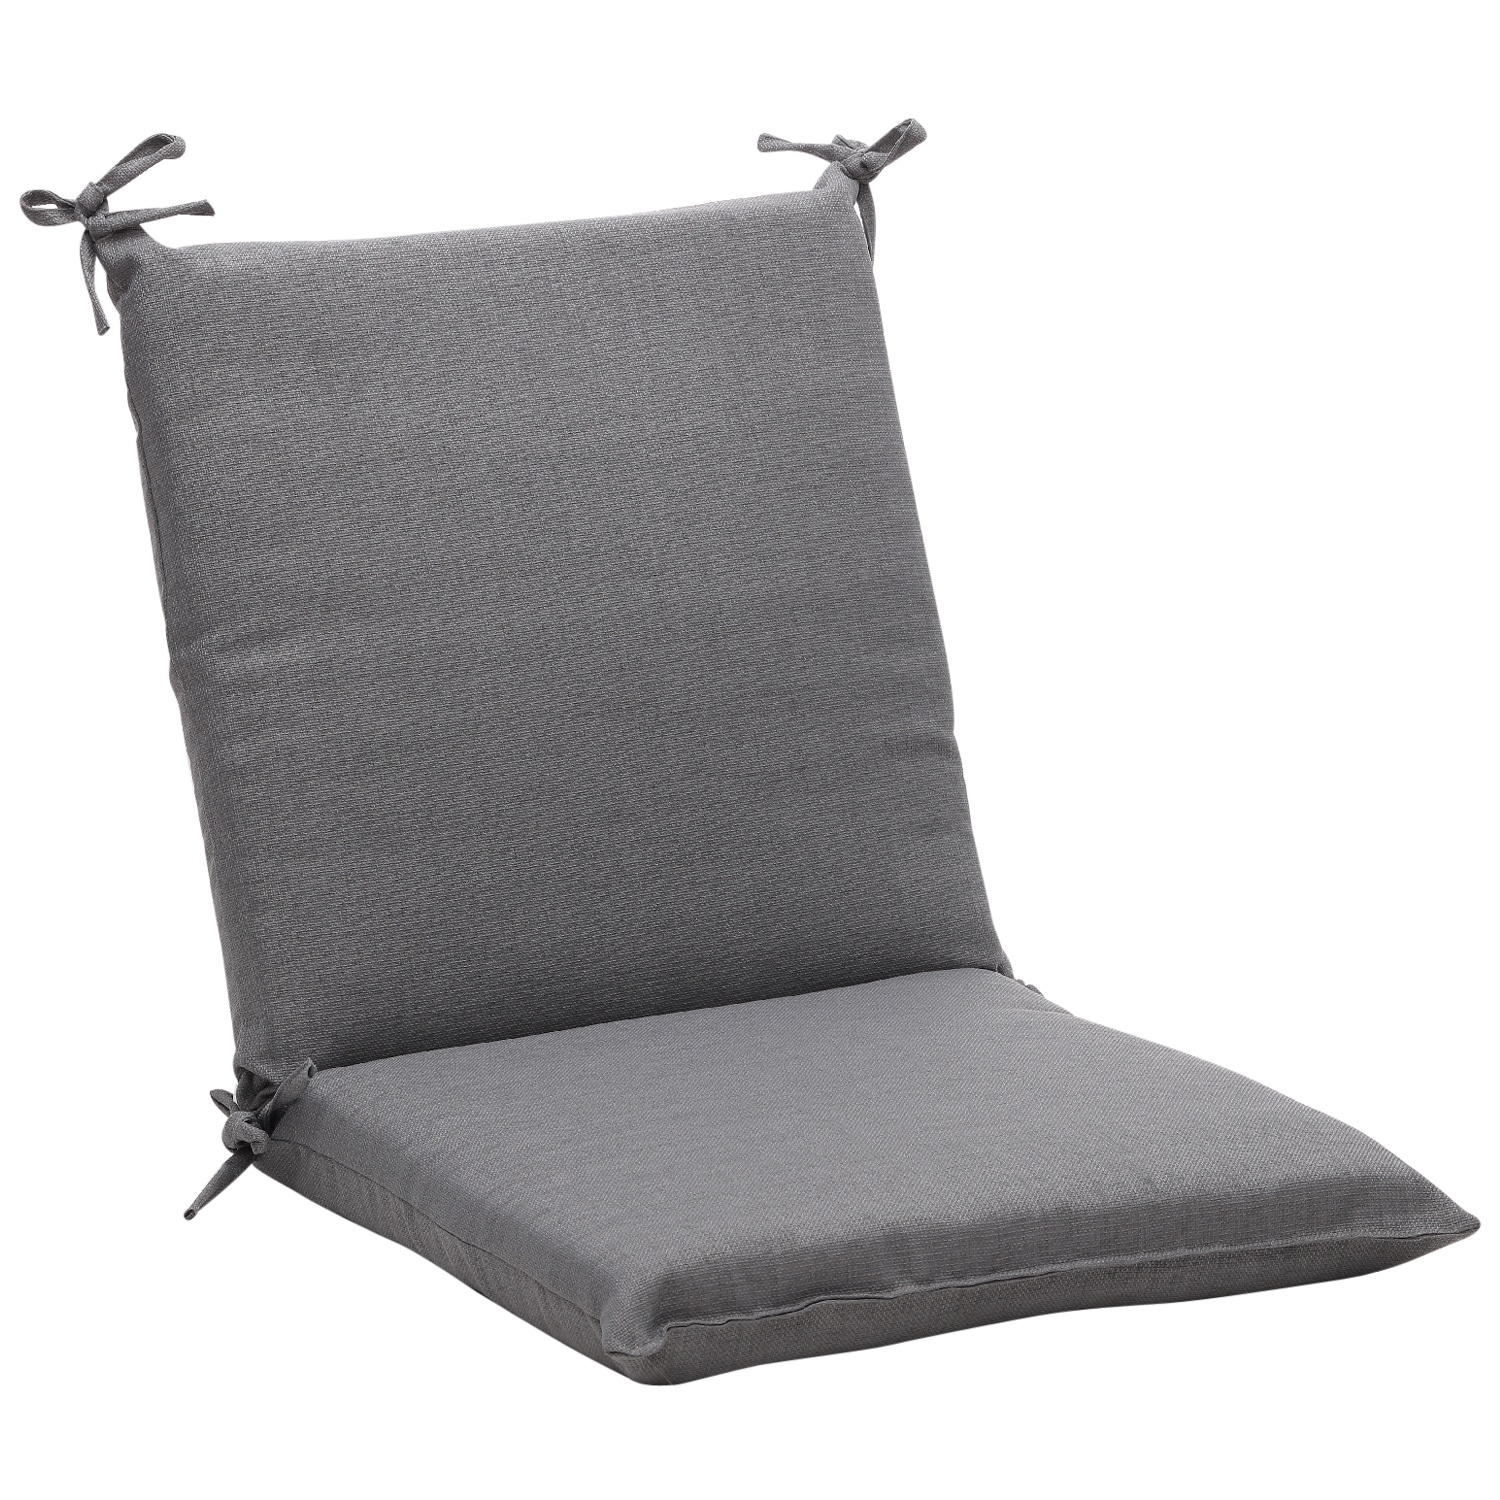 Squared Solid Gray Textured Outdoor Chair Cushion - 14095704 ...